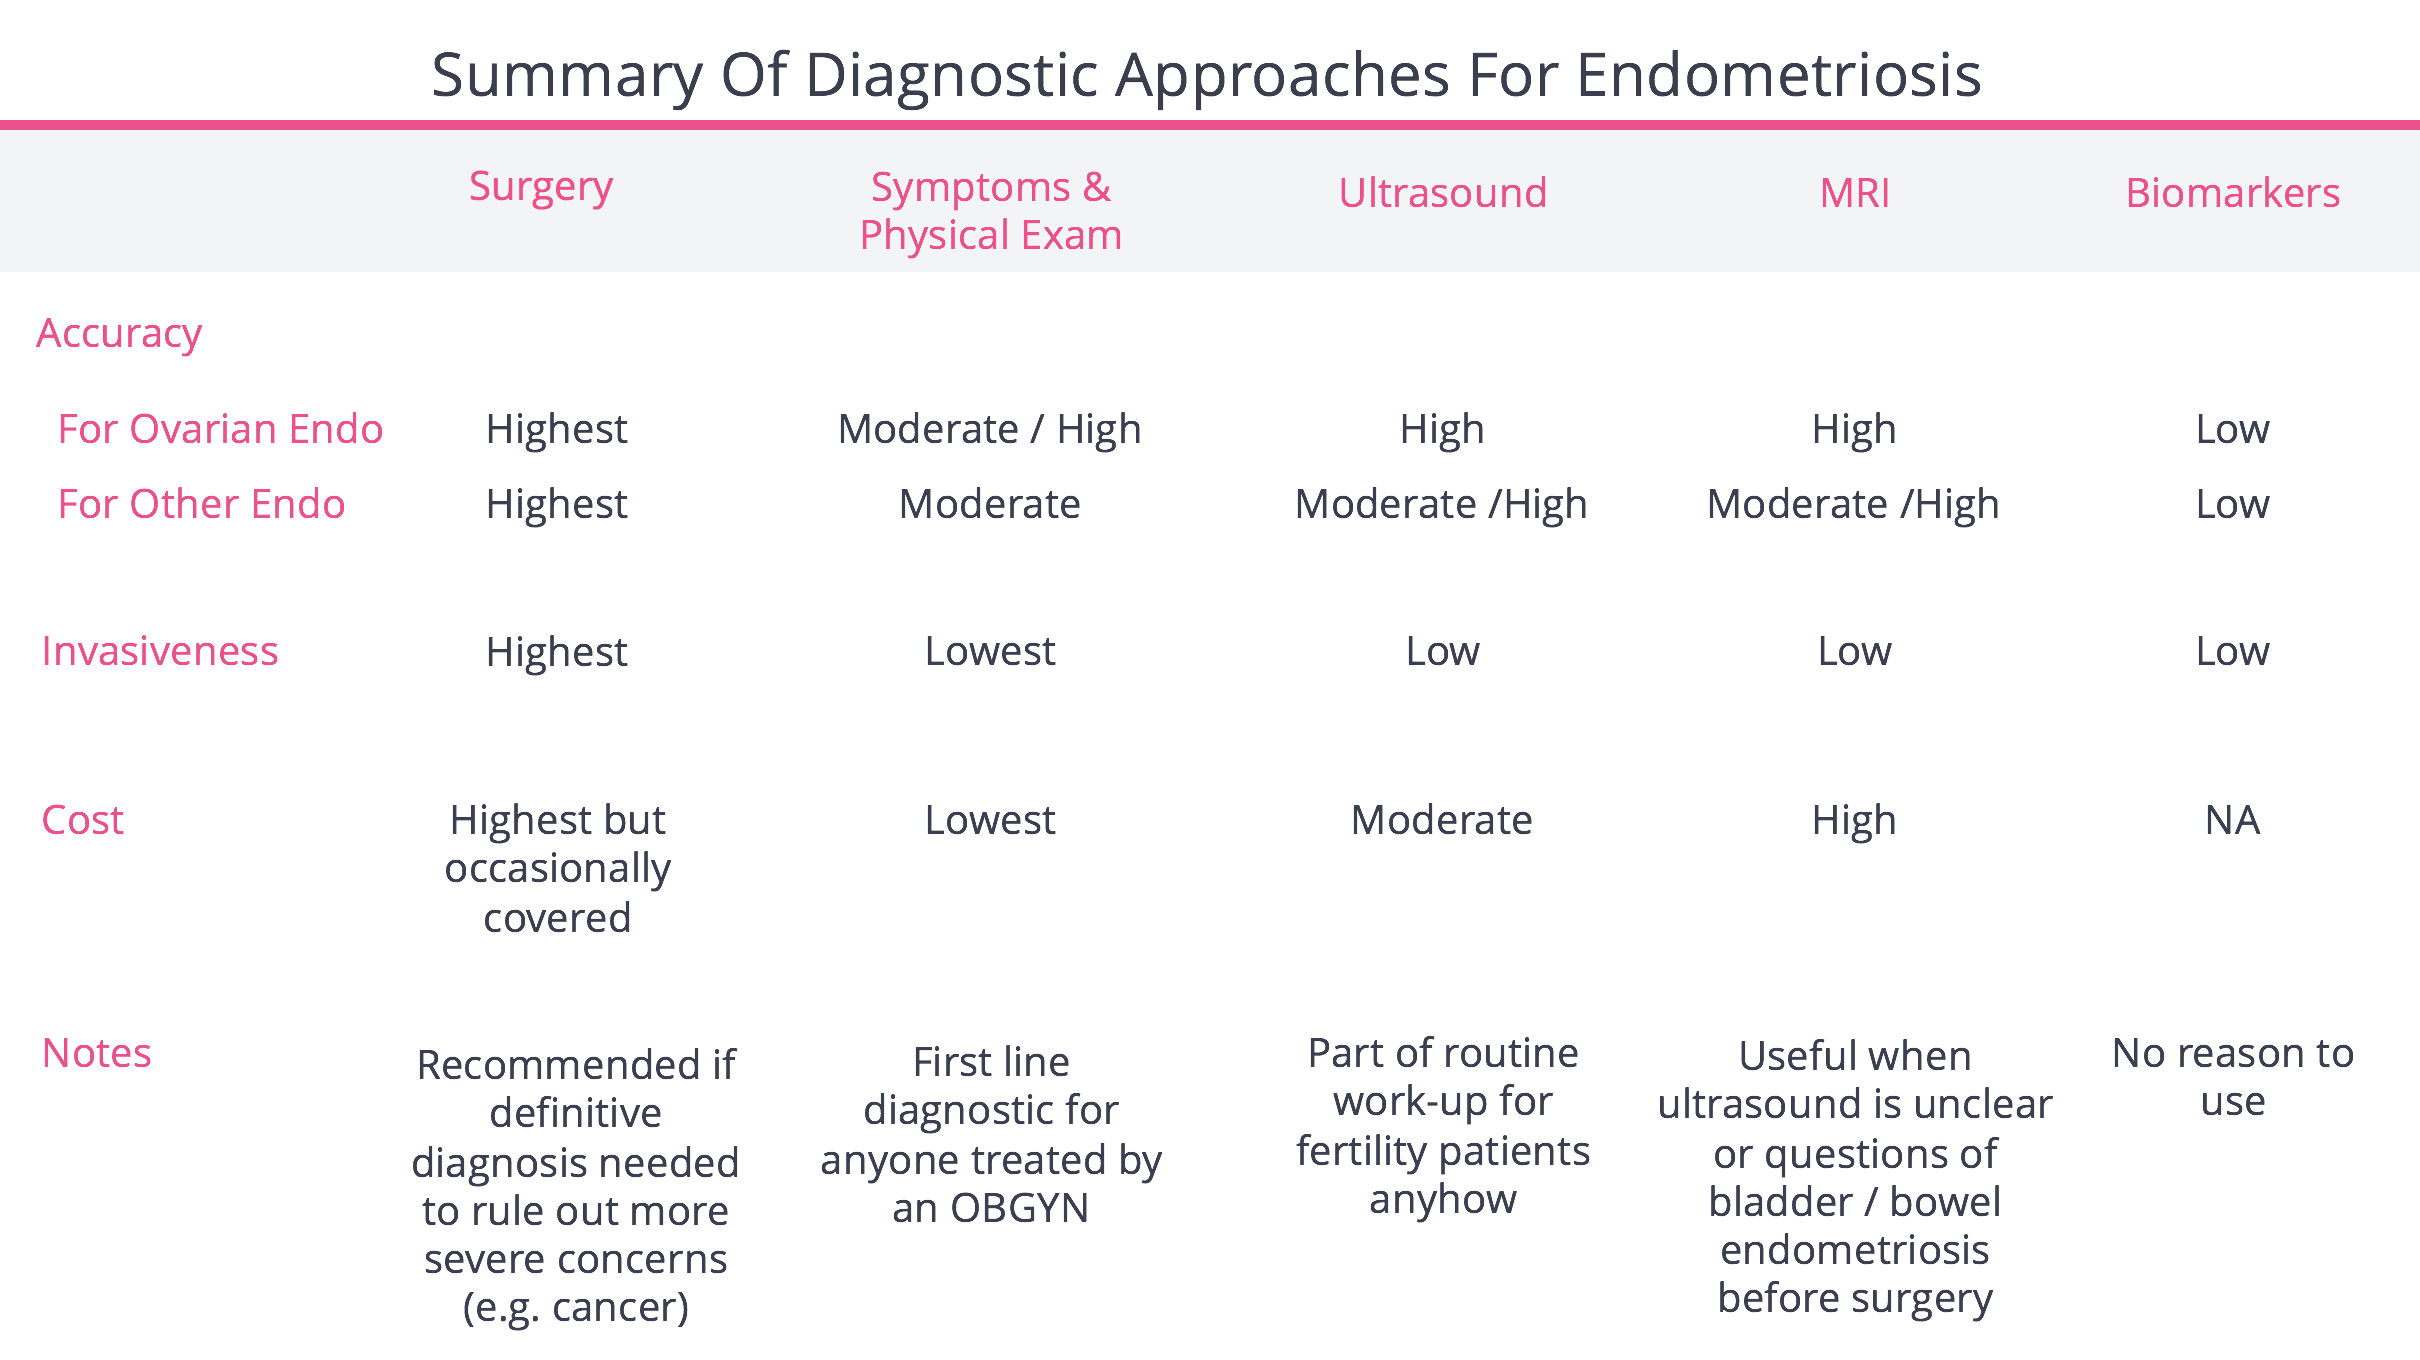 Summary Of Diagnostic Approaches For Endometriosis